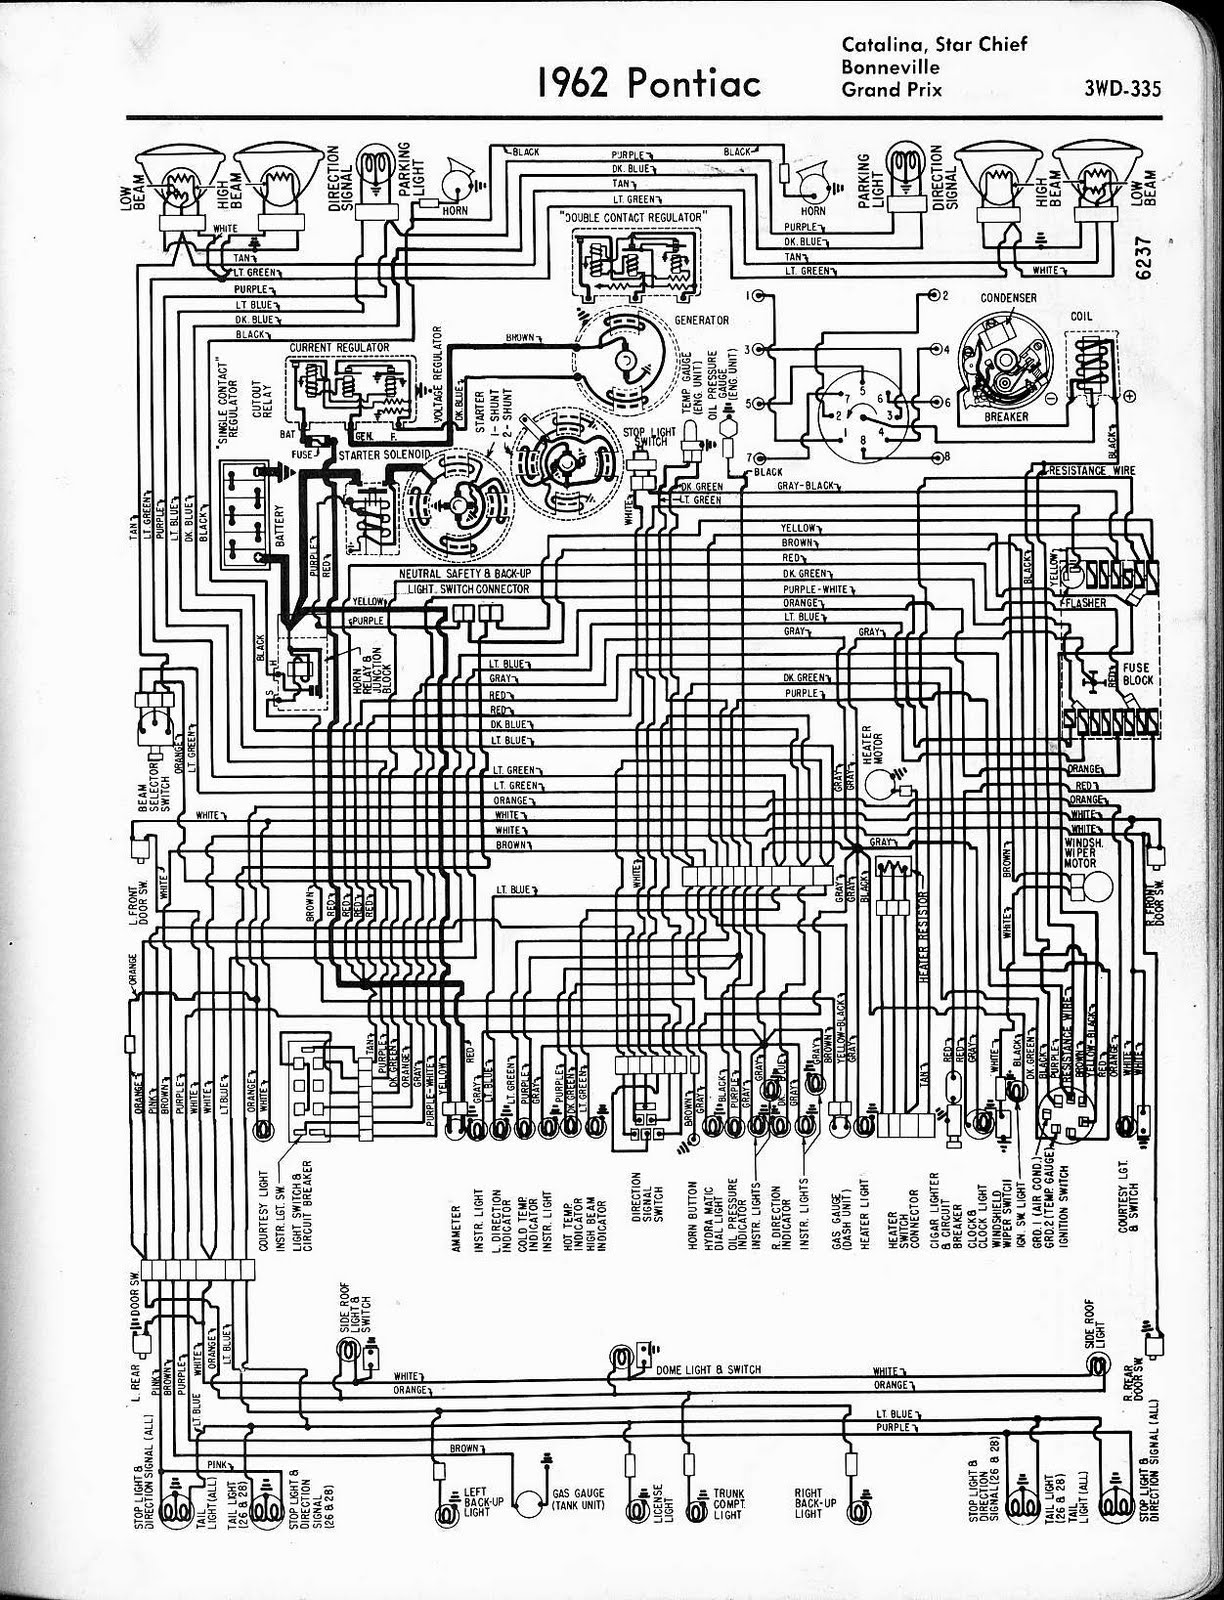 Home Radio Wiring Diagram Chevy Cruze